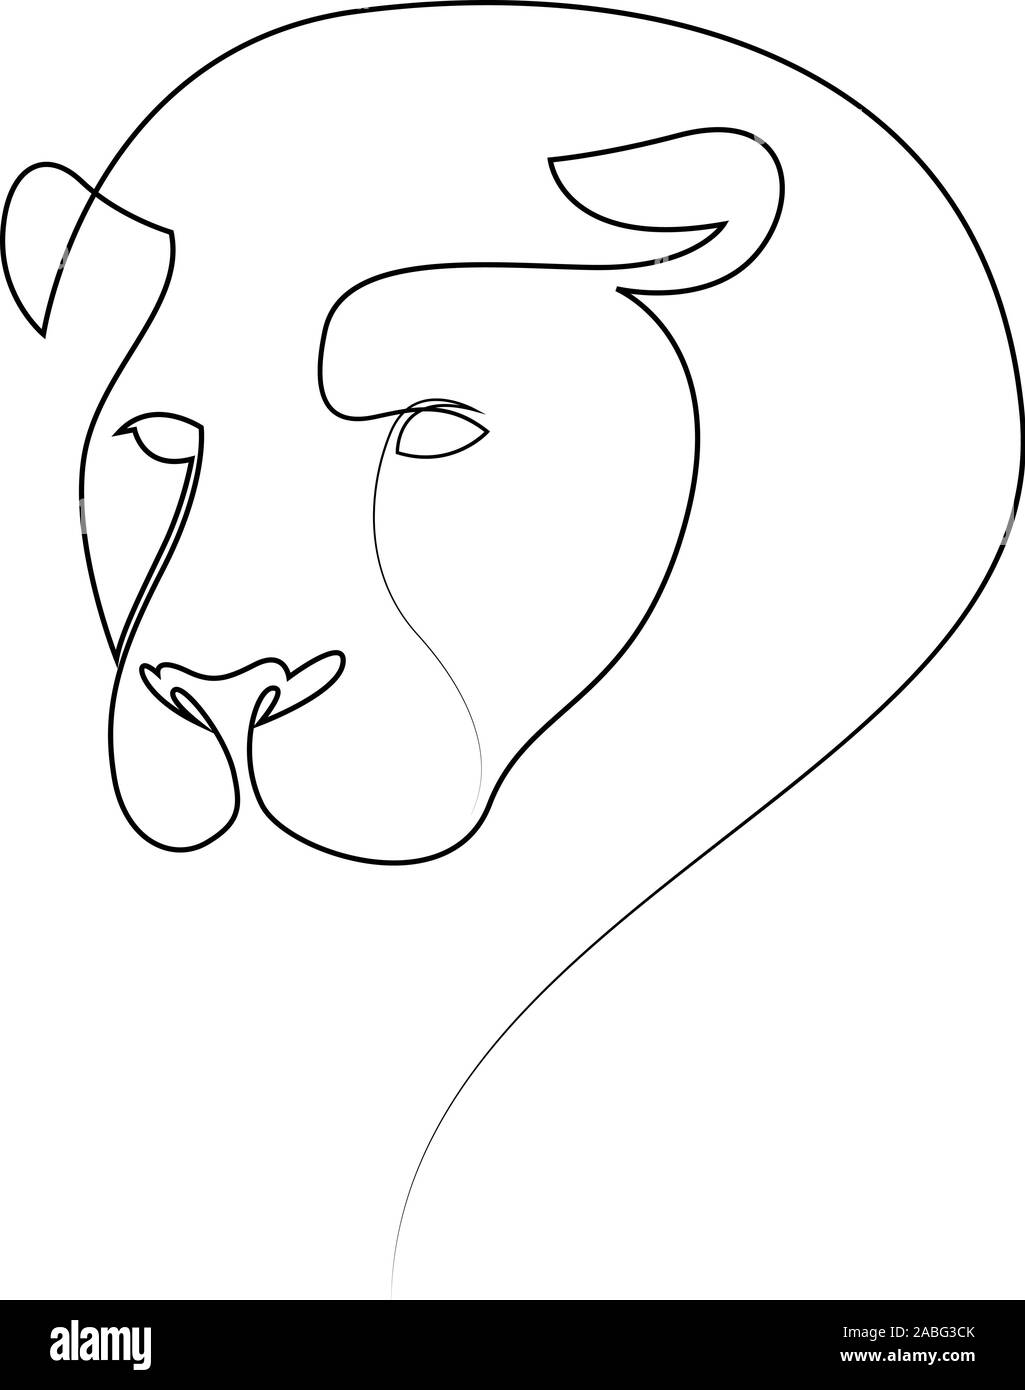 One Line Design Silhouette Of Lion Hand Drawn Minimalism Style Abstract Lion Vector Illustration Stock Vector Image Art Alamy Polish your personal project or design with these lion cub transparent png images, make it even more personalized and more attractive. https www alamy com one line design silhouette of lion hand drawn minimalism style abstract lion vector illustration image334112147 html